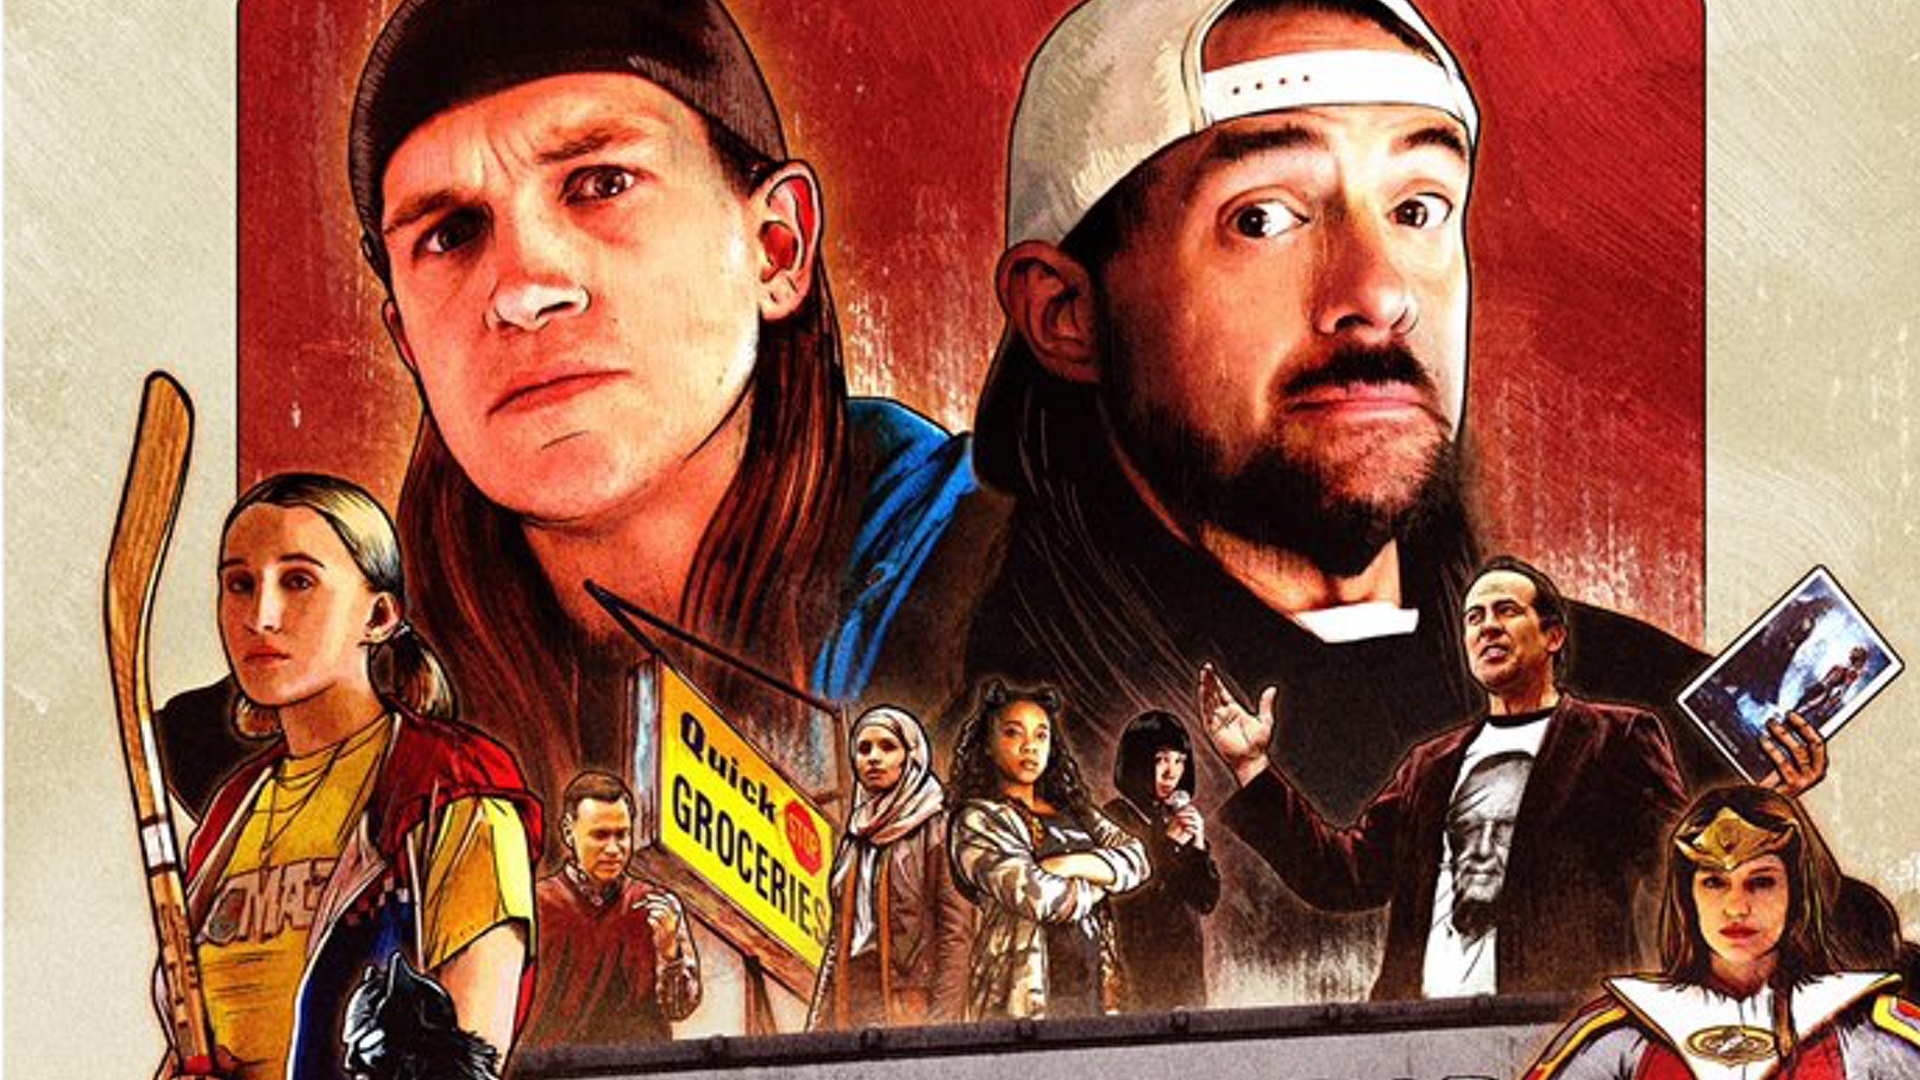 Kevin Smith Shares First Poster For Jay Silent Bob Reboot